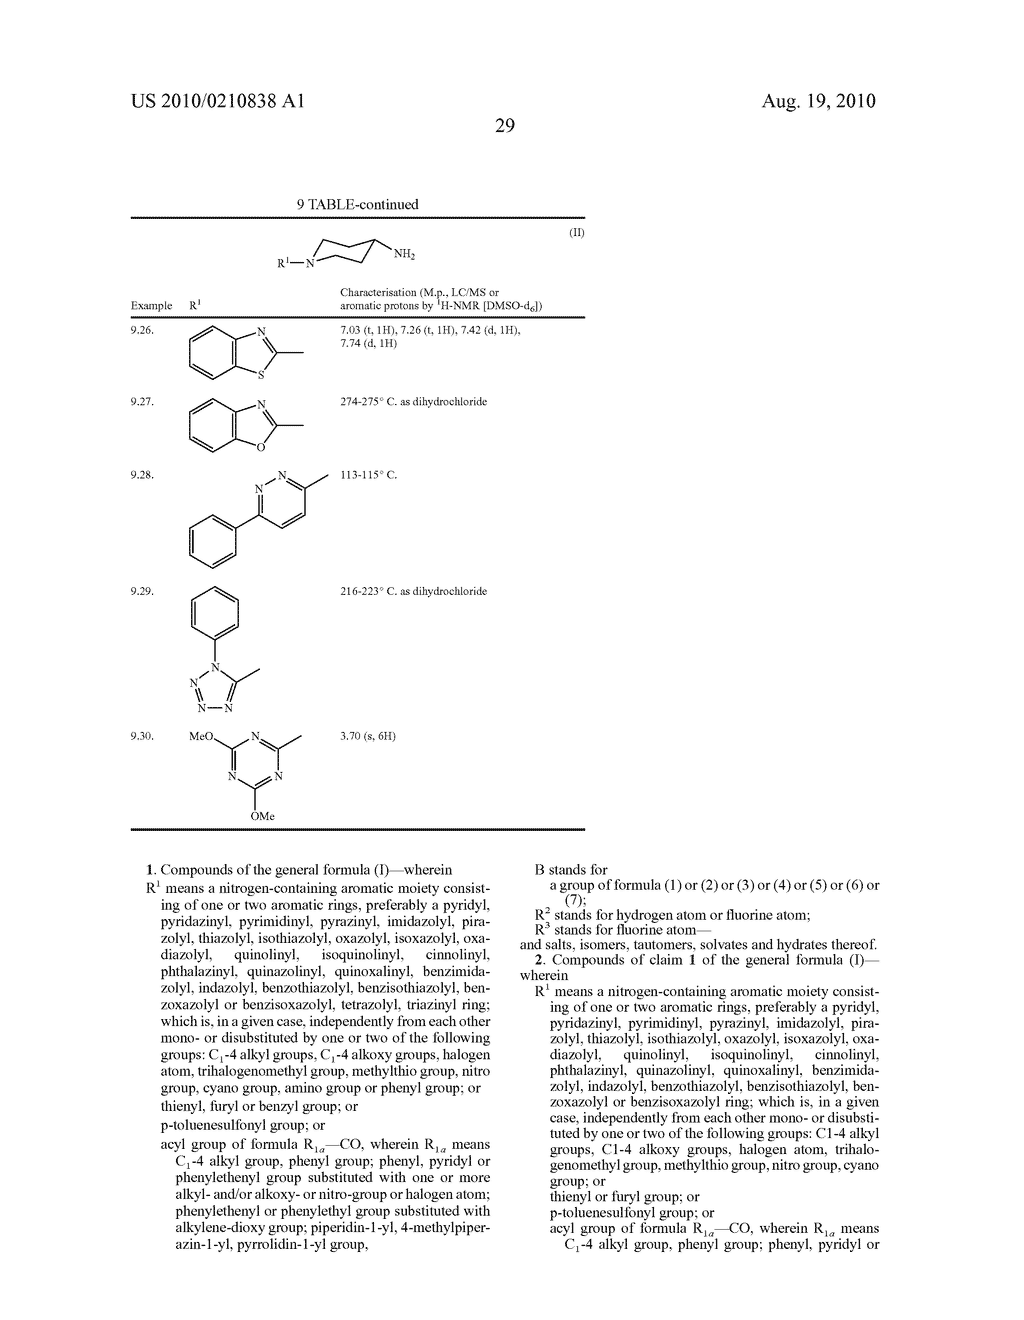 FLUOROPYRROLIDINES HAVING DIPEPTIDYL PEPTIDASE ENZYME INHIBITORY ACTIVITY - diagram, schematic, and image 33